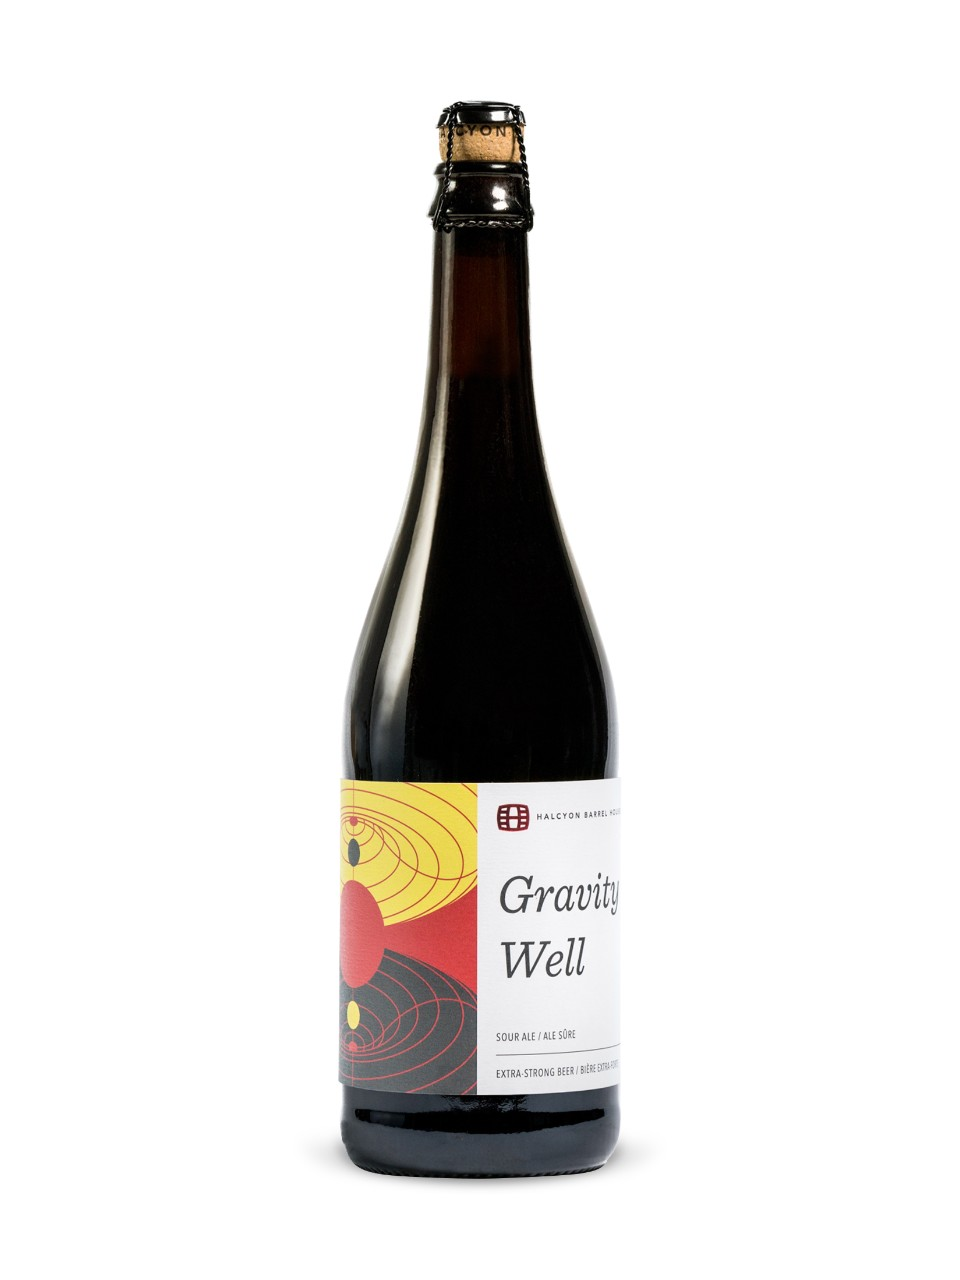 Beau's Halcyon Barrel House Gravity Well